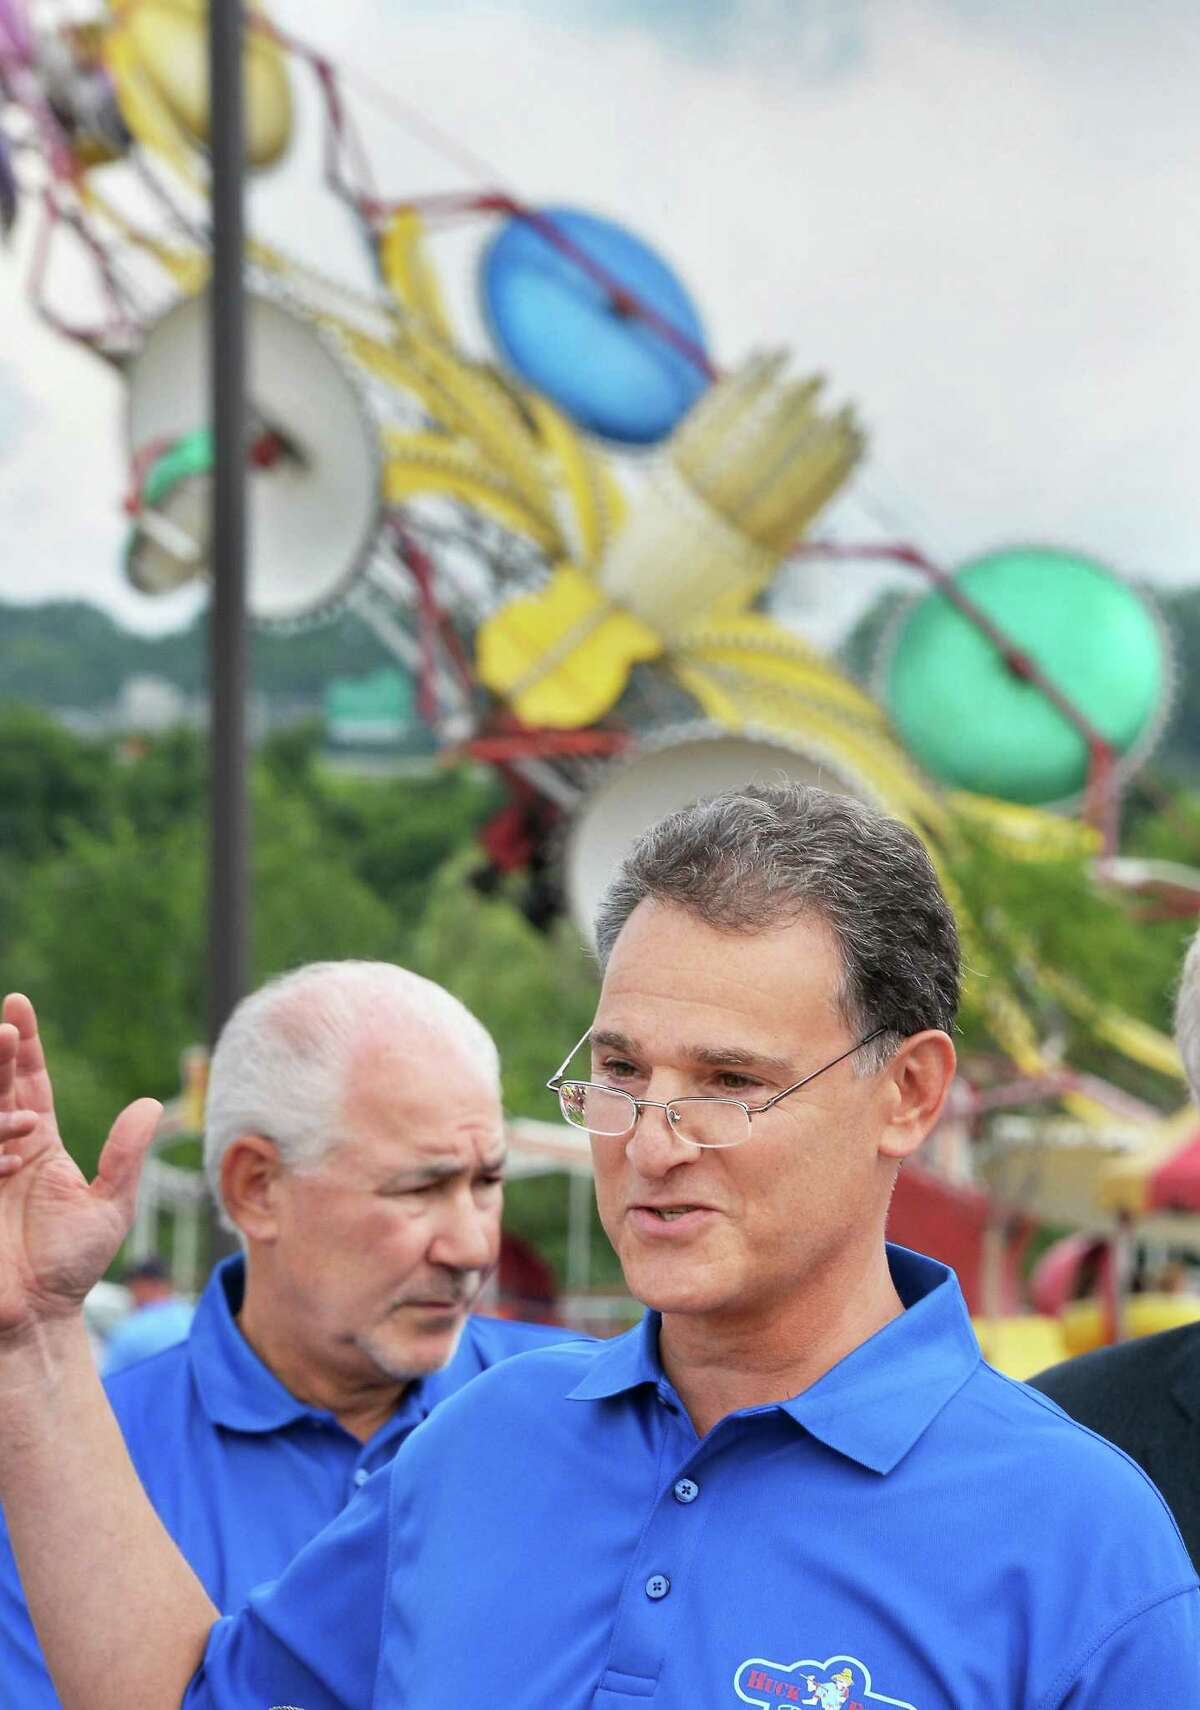 CEO Jeff Sperbers, left, and brother and CFO Reid Sperbers during the Grand opening of Huck Finn's Playland Wednesday July 1, 2015, Albany, NY. (John Carl D'Annibale / Times Union)